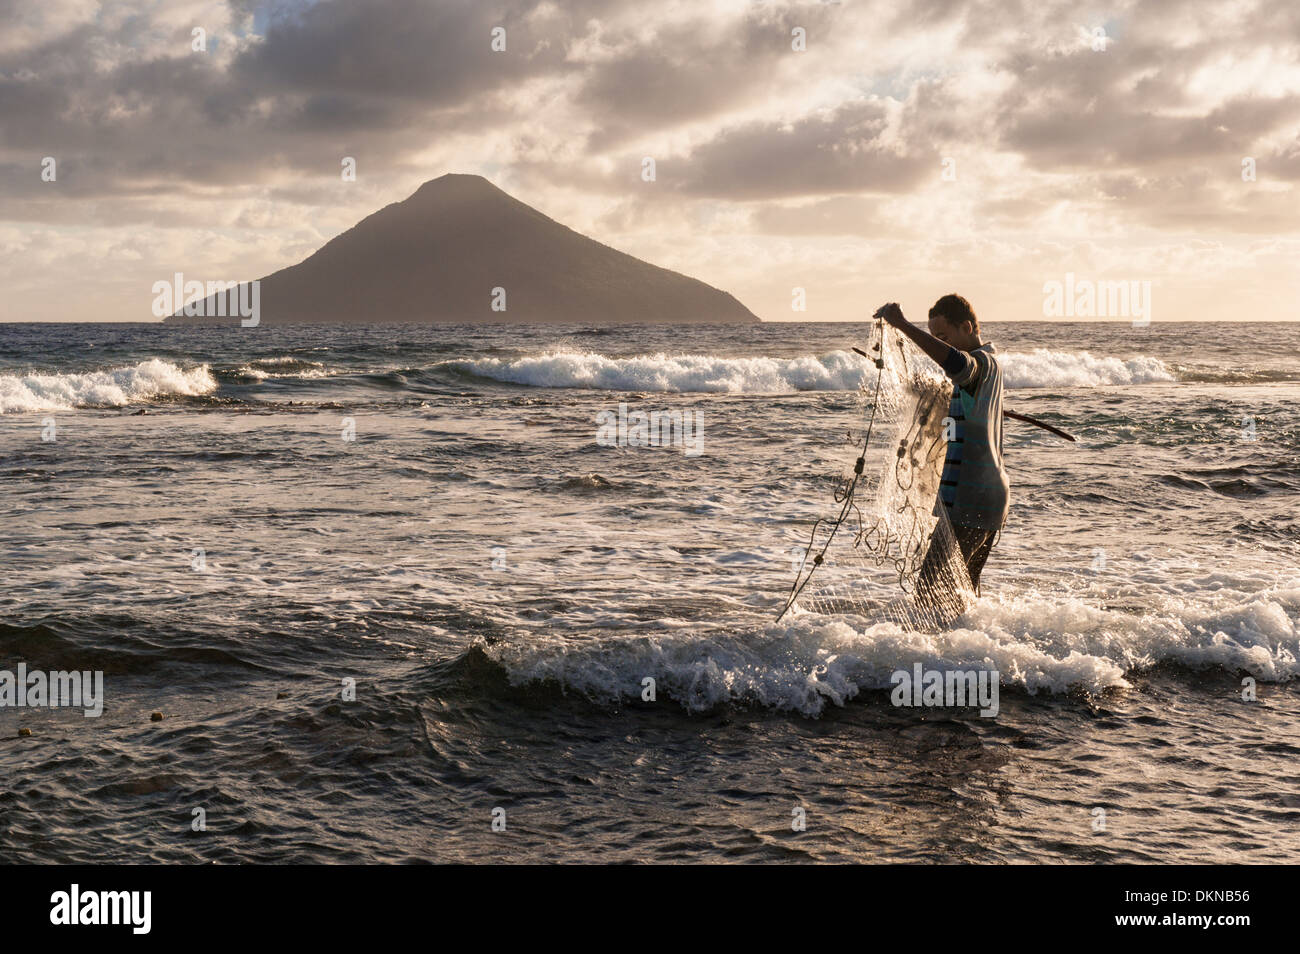 Young man net fishing off Hakautu'Utu'U island, on the edge of the lagoon at Niuatoputapu. Tonga - Stock Image